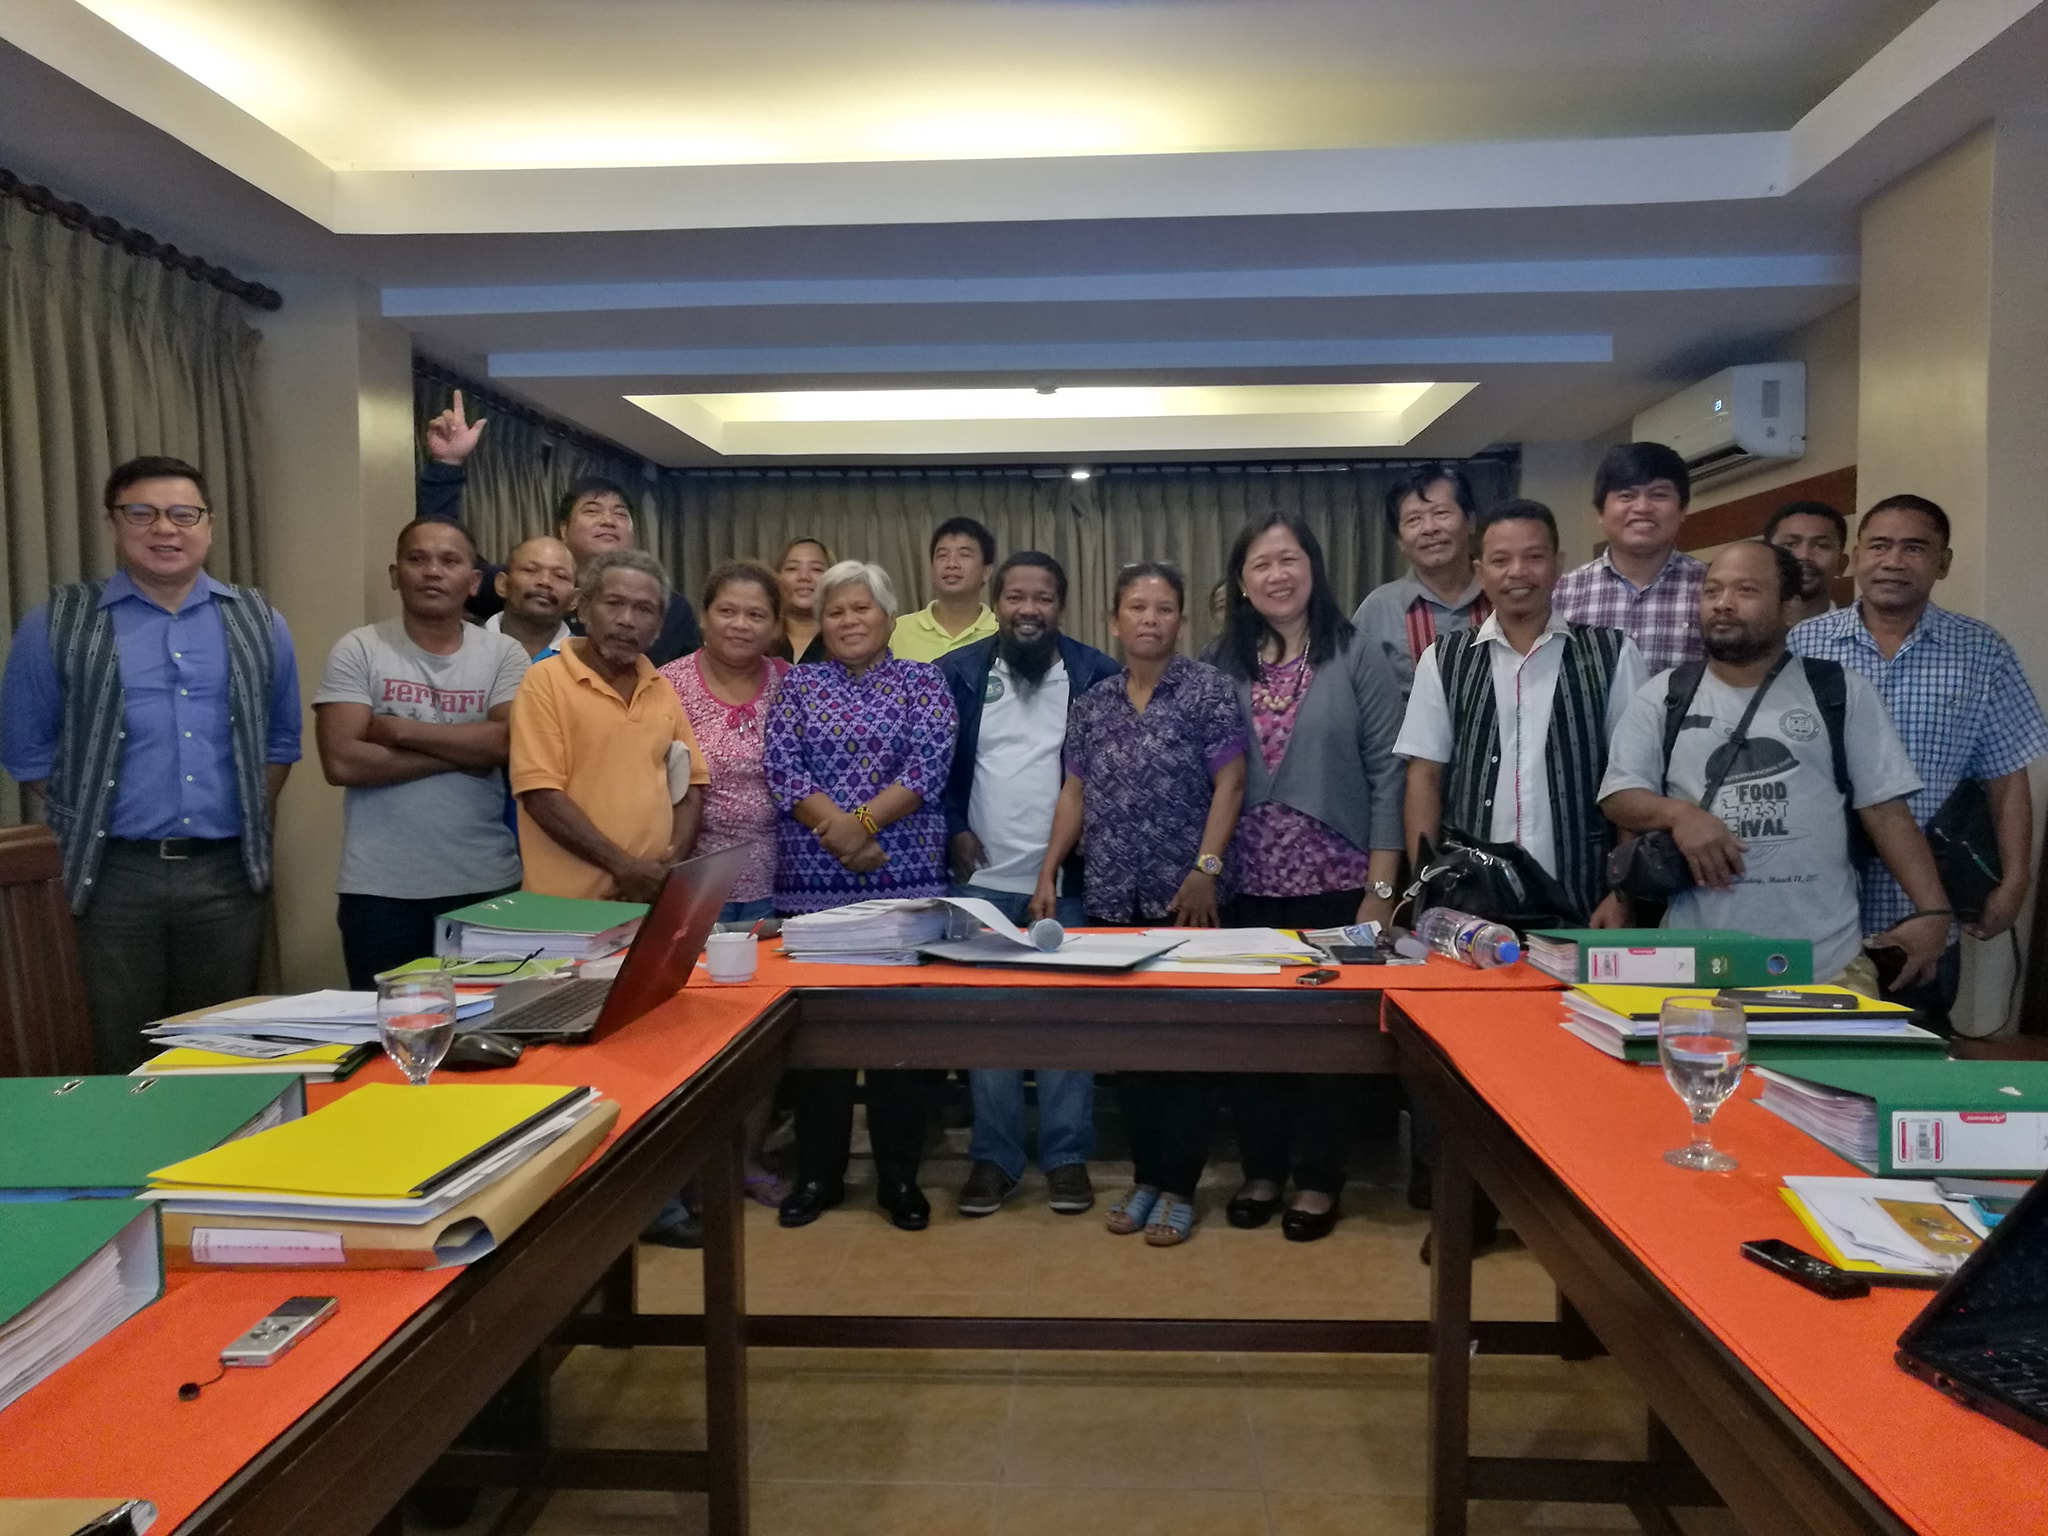 Ayta Magbukun Indigenous Peoples of Morong, Bataan! Their Certificate of Ancestral Domain Title (CADT) Application was Approved